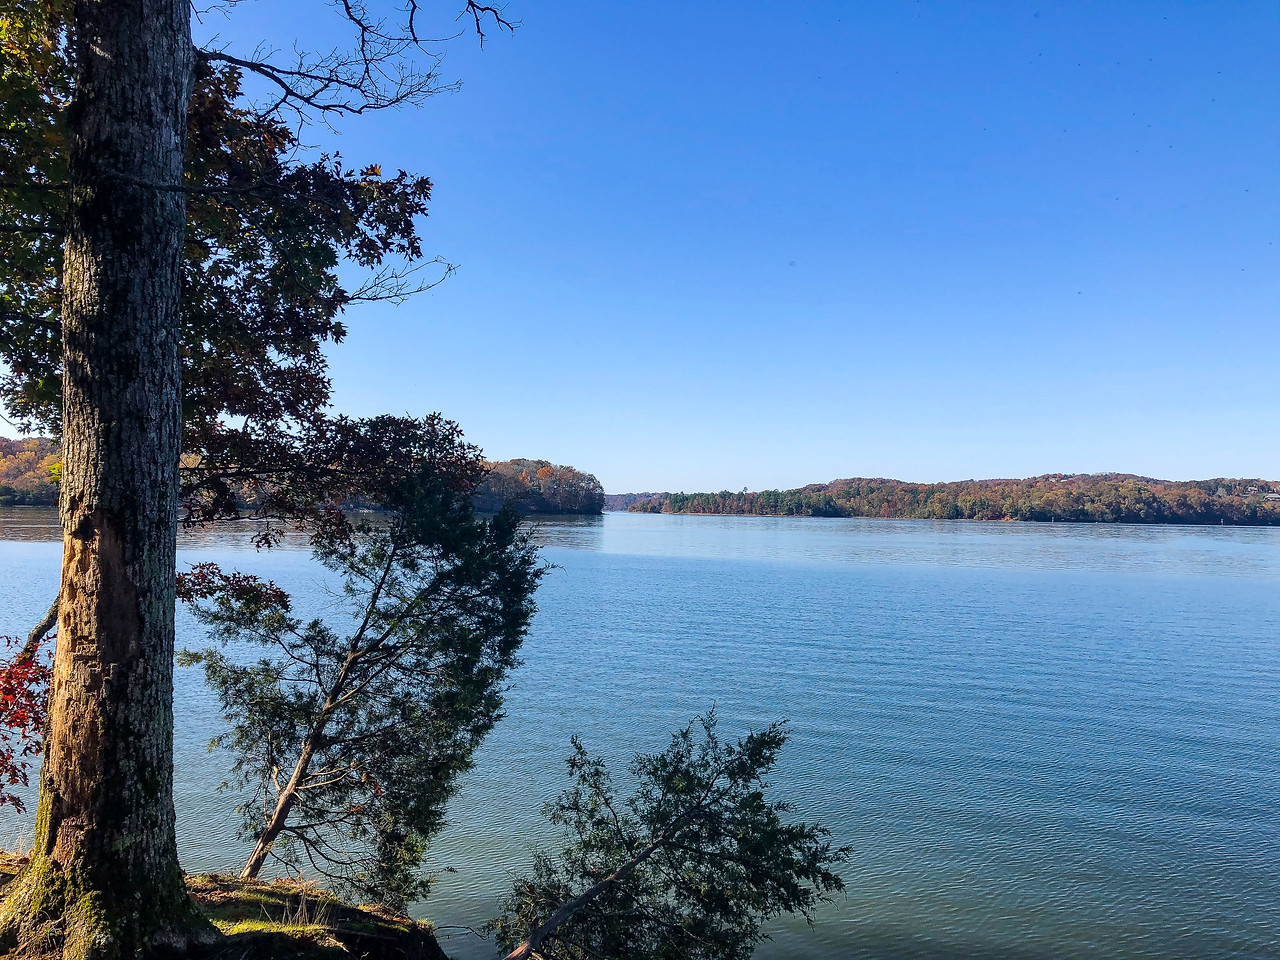 The lake with shorelines in the distance.